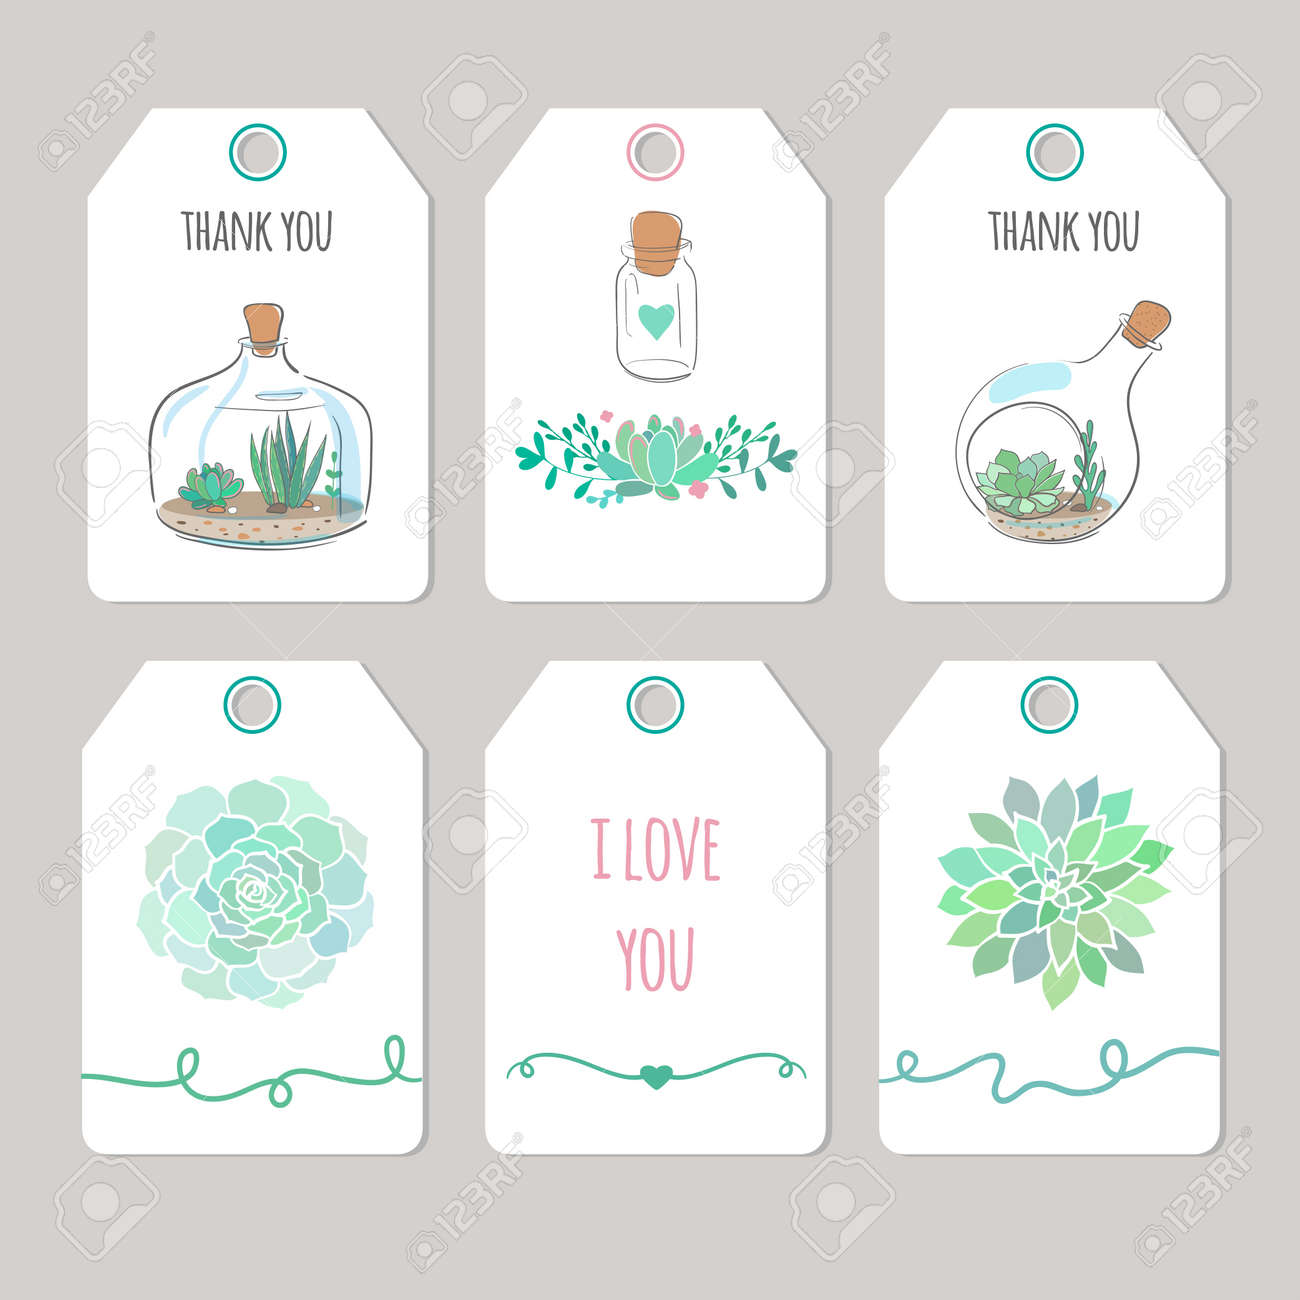 photograph regarding Thank You Printable Tag known as thank by yourself playing cards with succulents, vector printable tags and playing cards